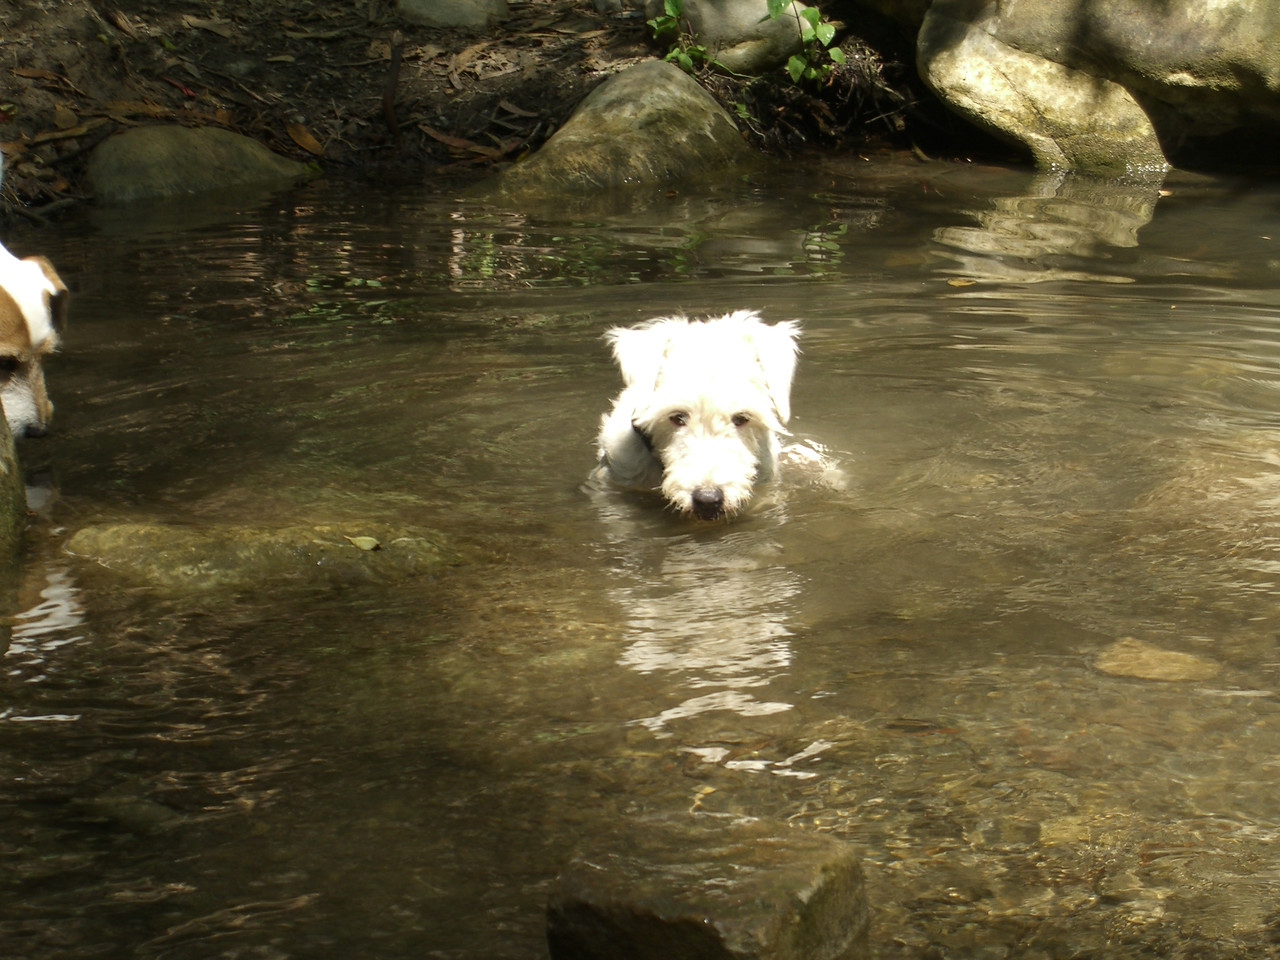 7/15/07 Whitty soaking in San Ysidro Creek, Montecito